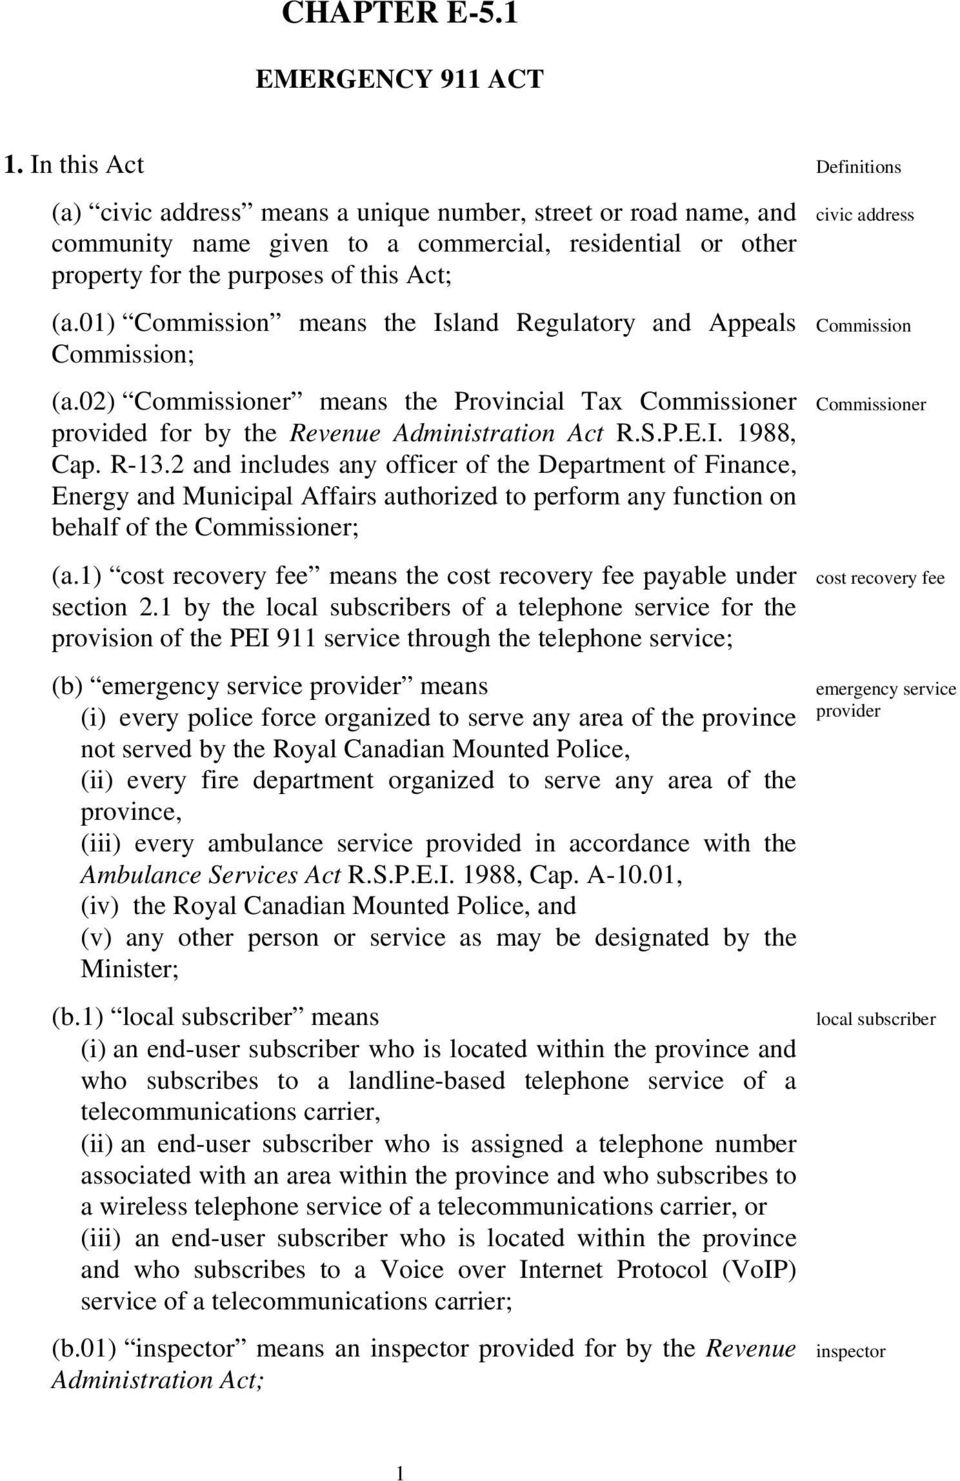 01) Commission means the Island Regulatory and Appeals Commission; (a.02) Commissioner means the Provincial Tax Commissioner provided for by the Revenue Administration Act R.S.P.E.I. 1988, Cap. R-13.